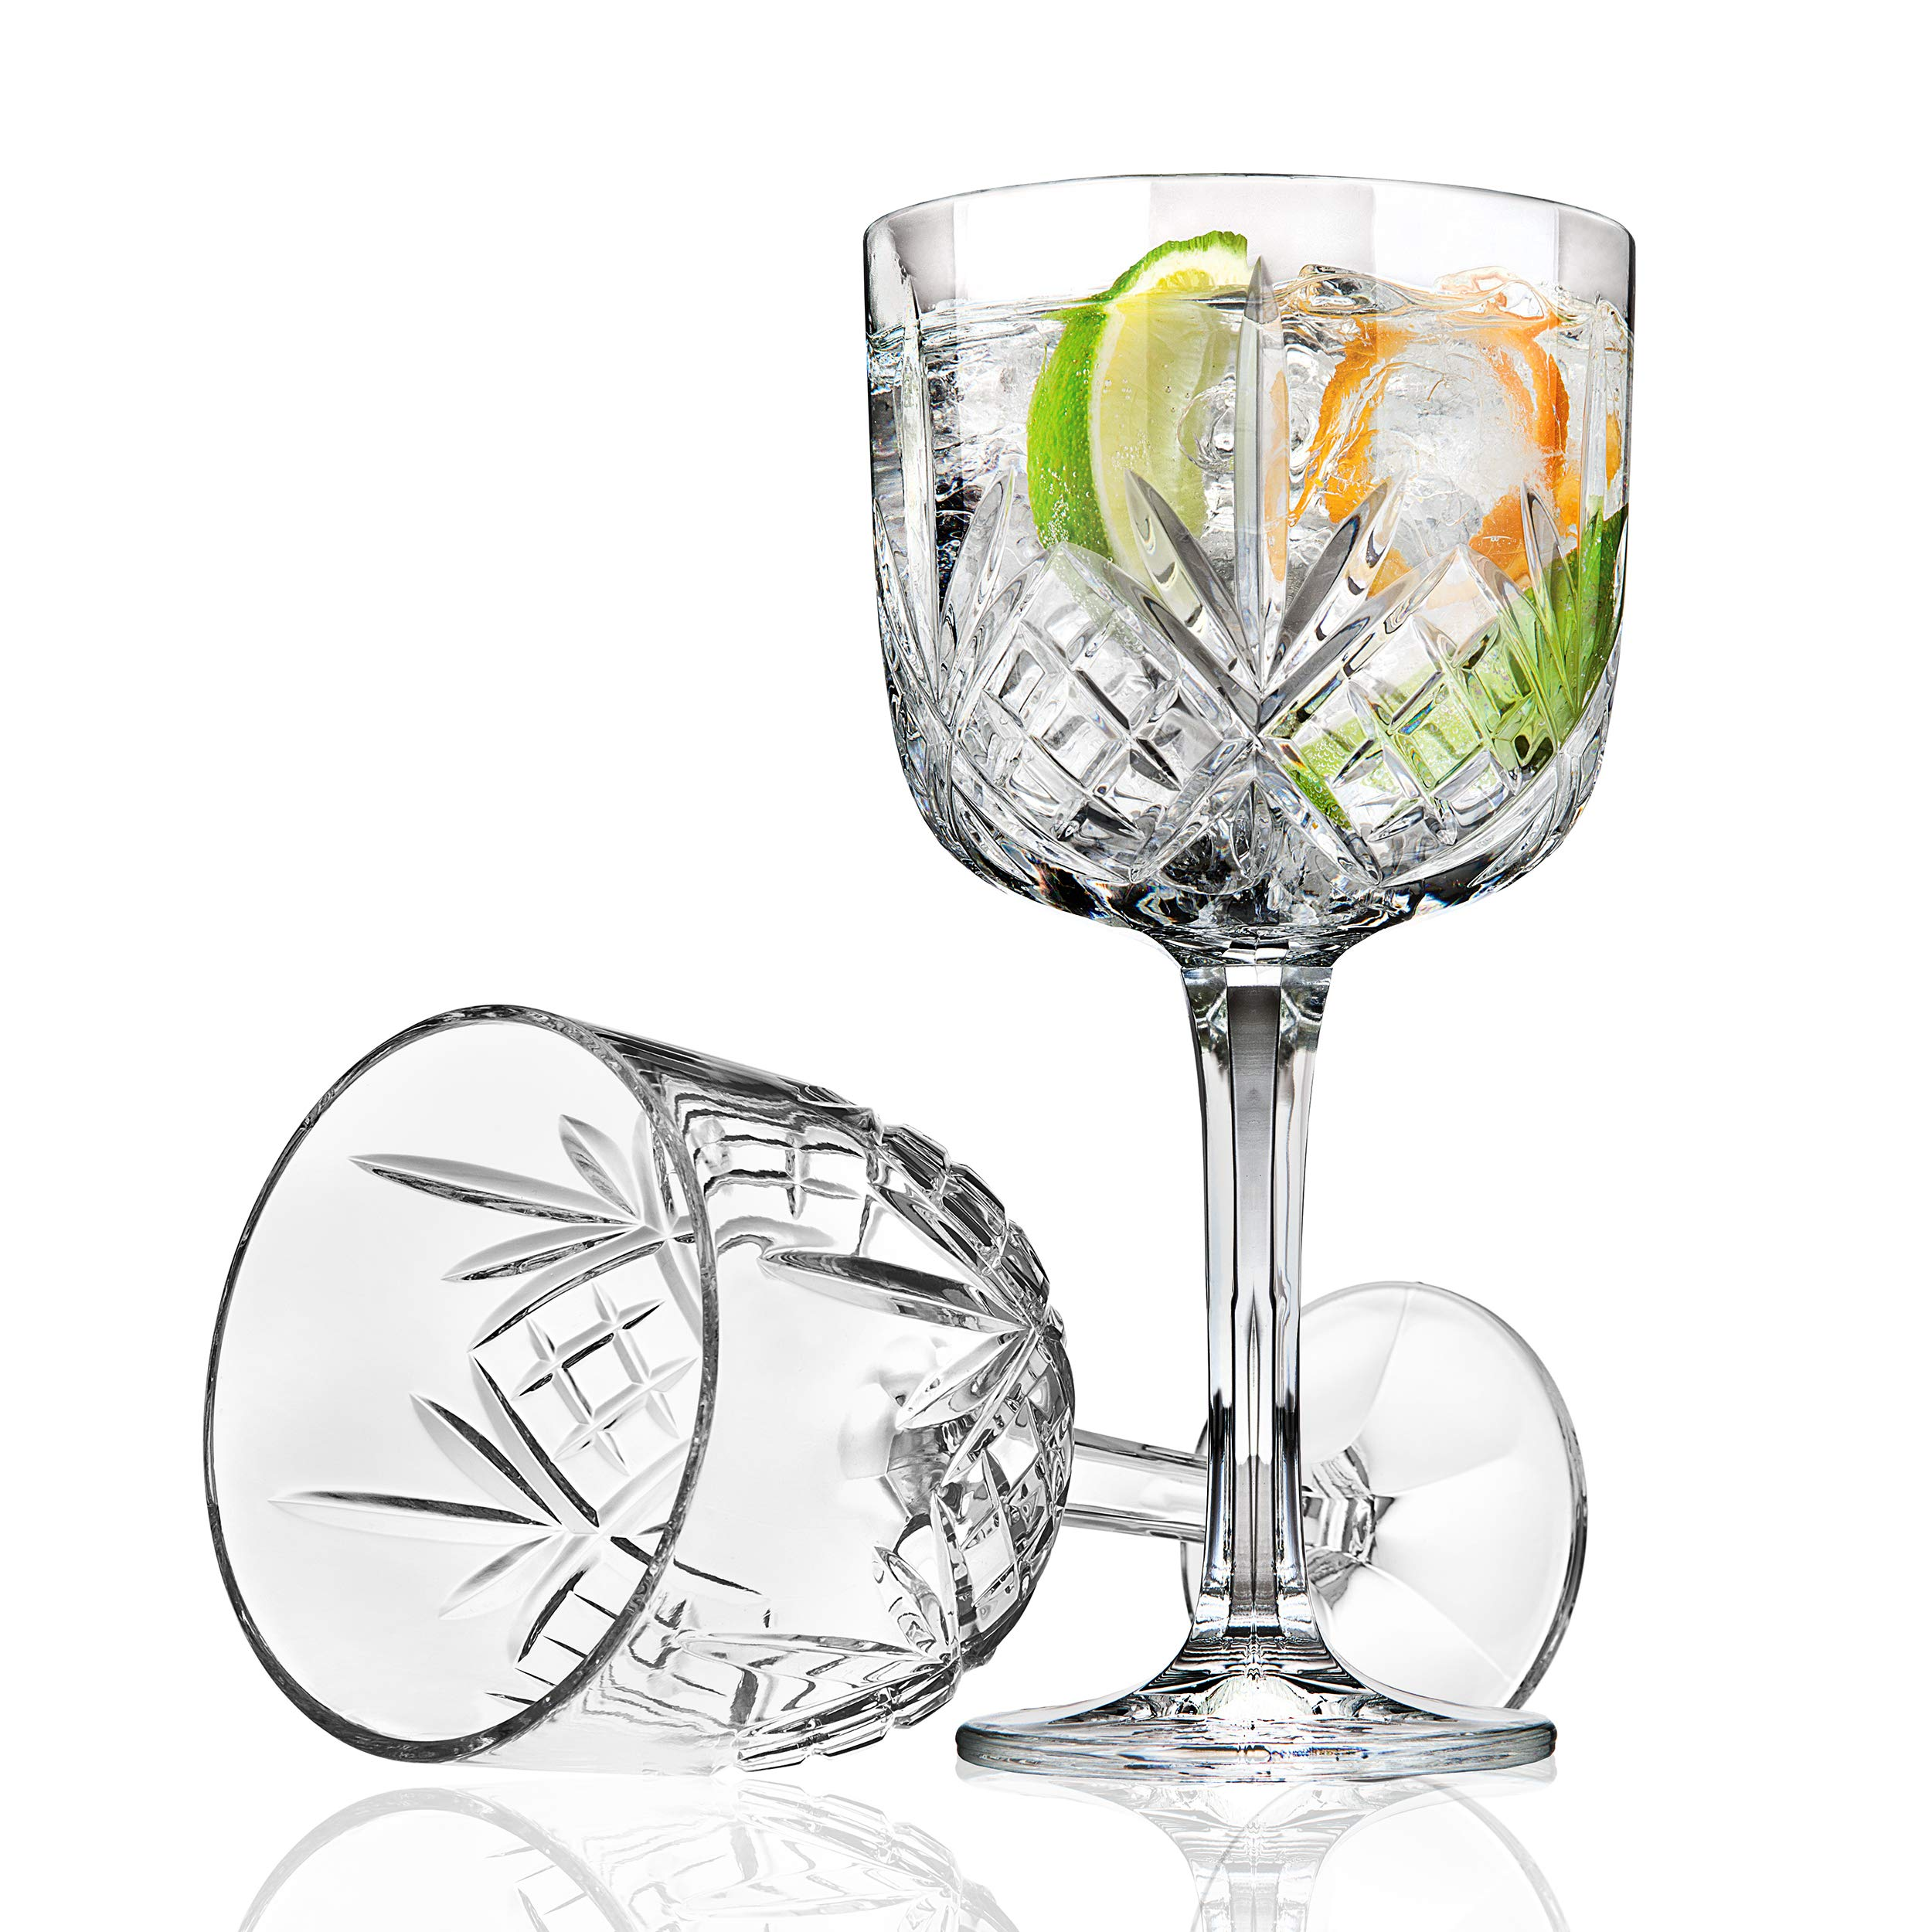 Godinger Gin Cocktail Coupe Goblet Glass - Dublin Collection, Set of 4